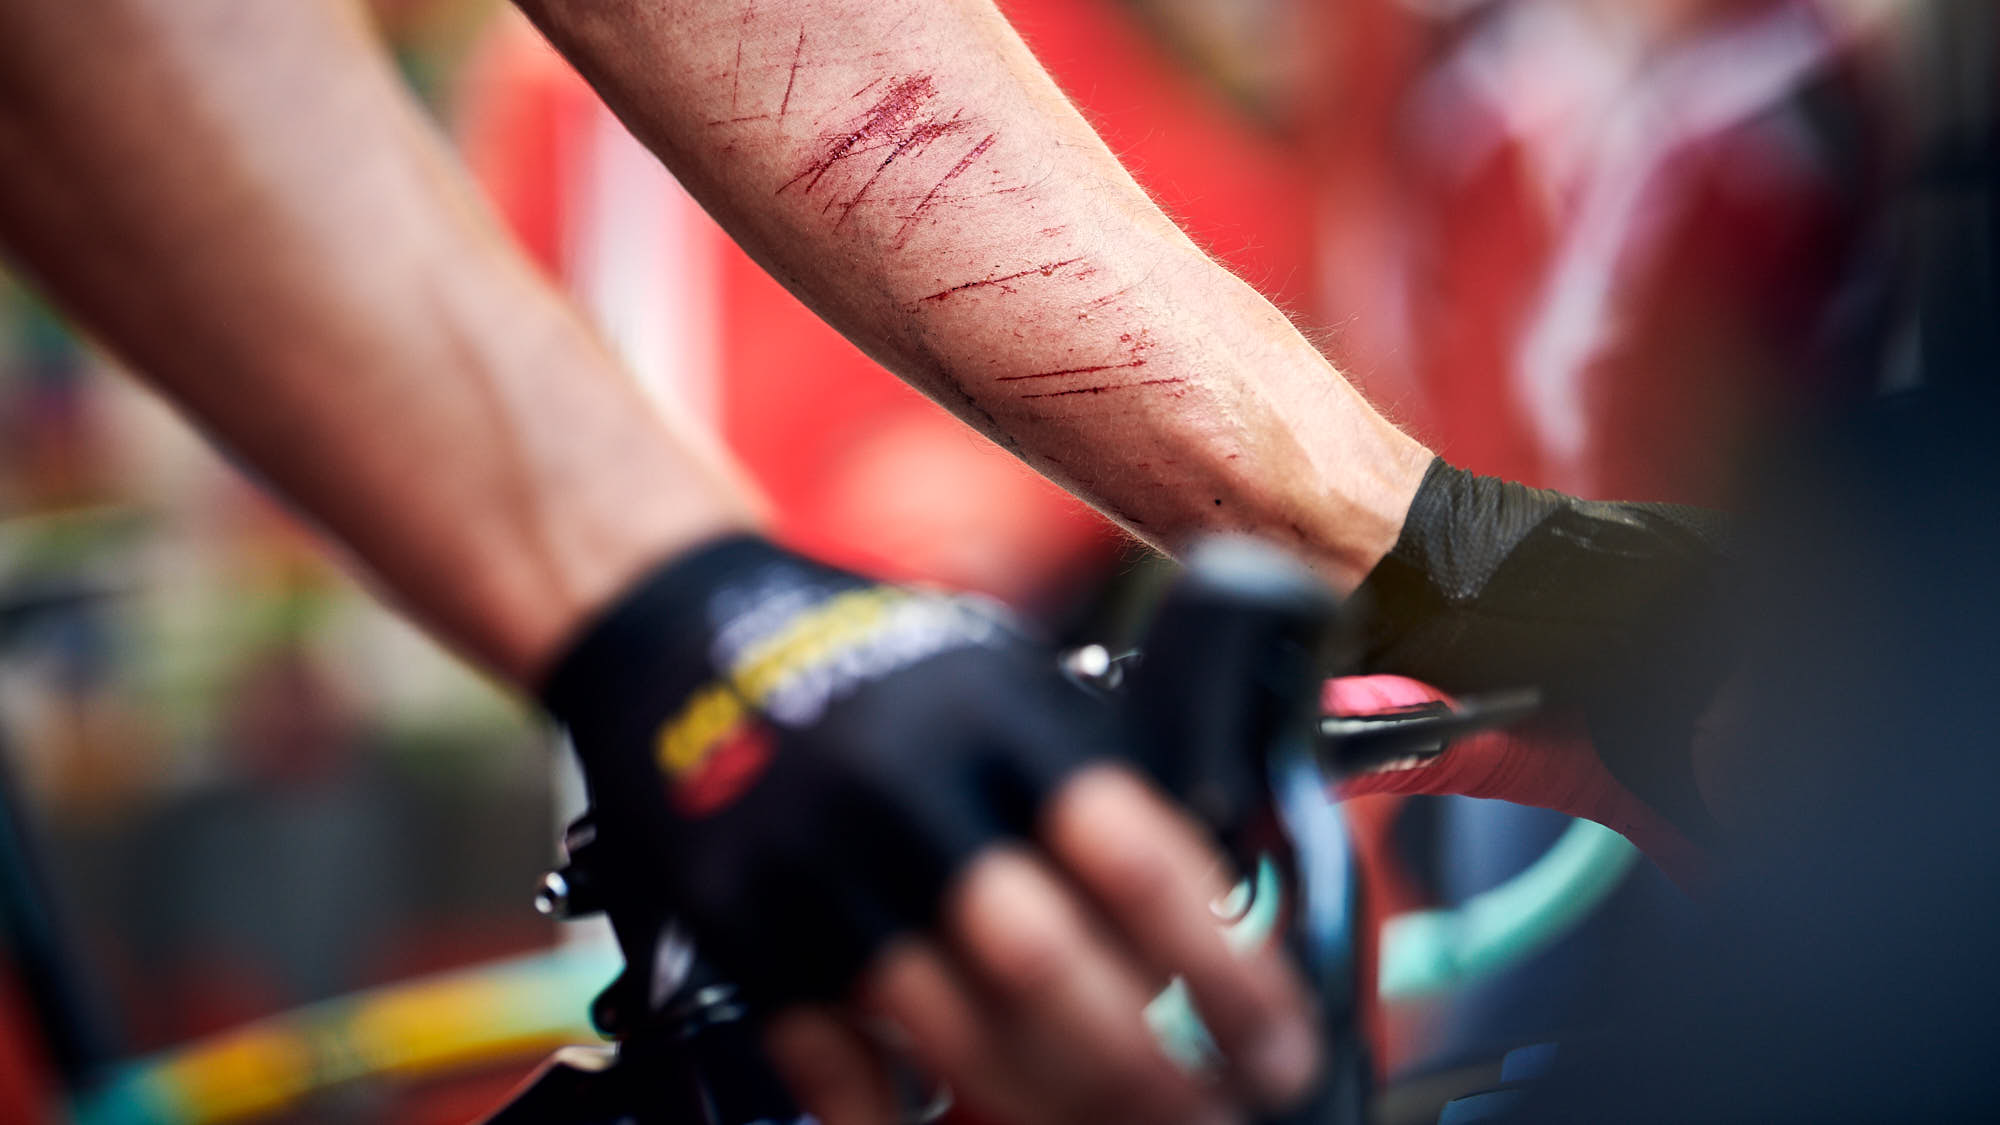 Cuts on the arm of Primoz Roglic after crashing during La Vuelta 2019